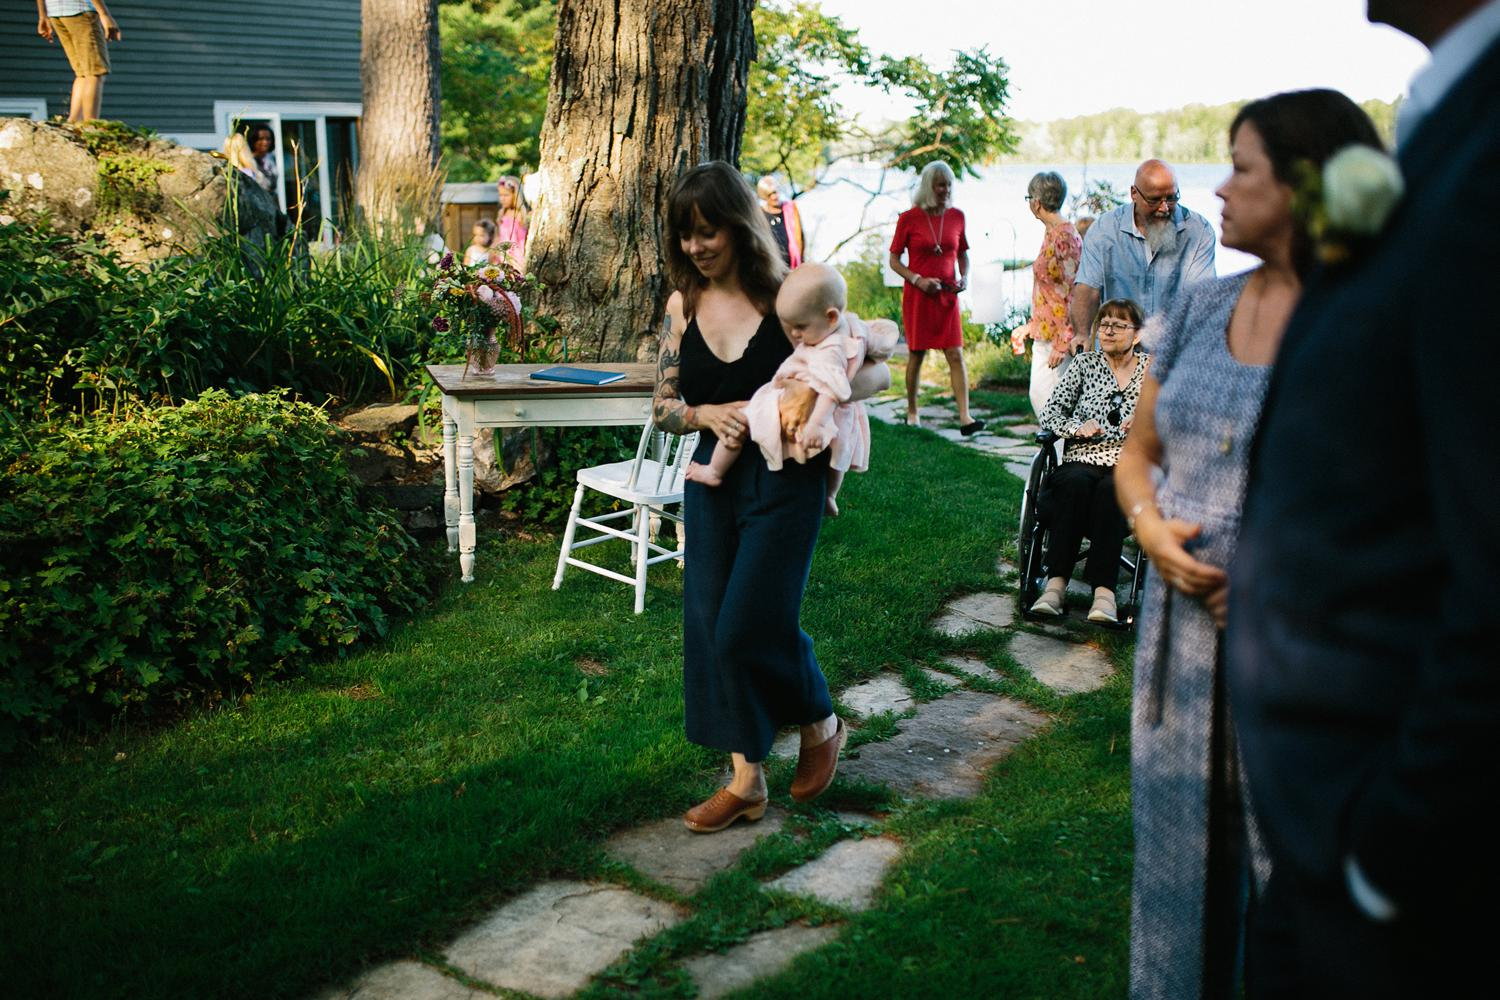 otty lake cottage wedding perth ontario-051.jpg